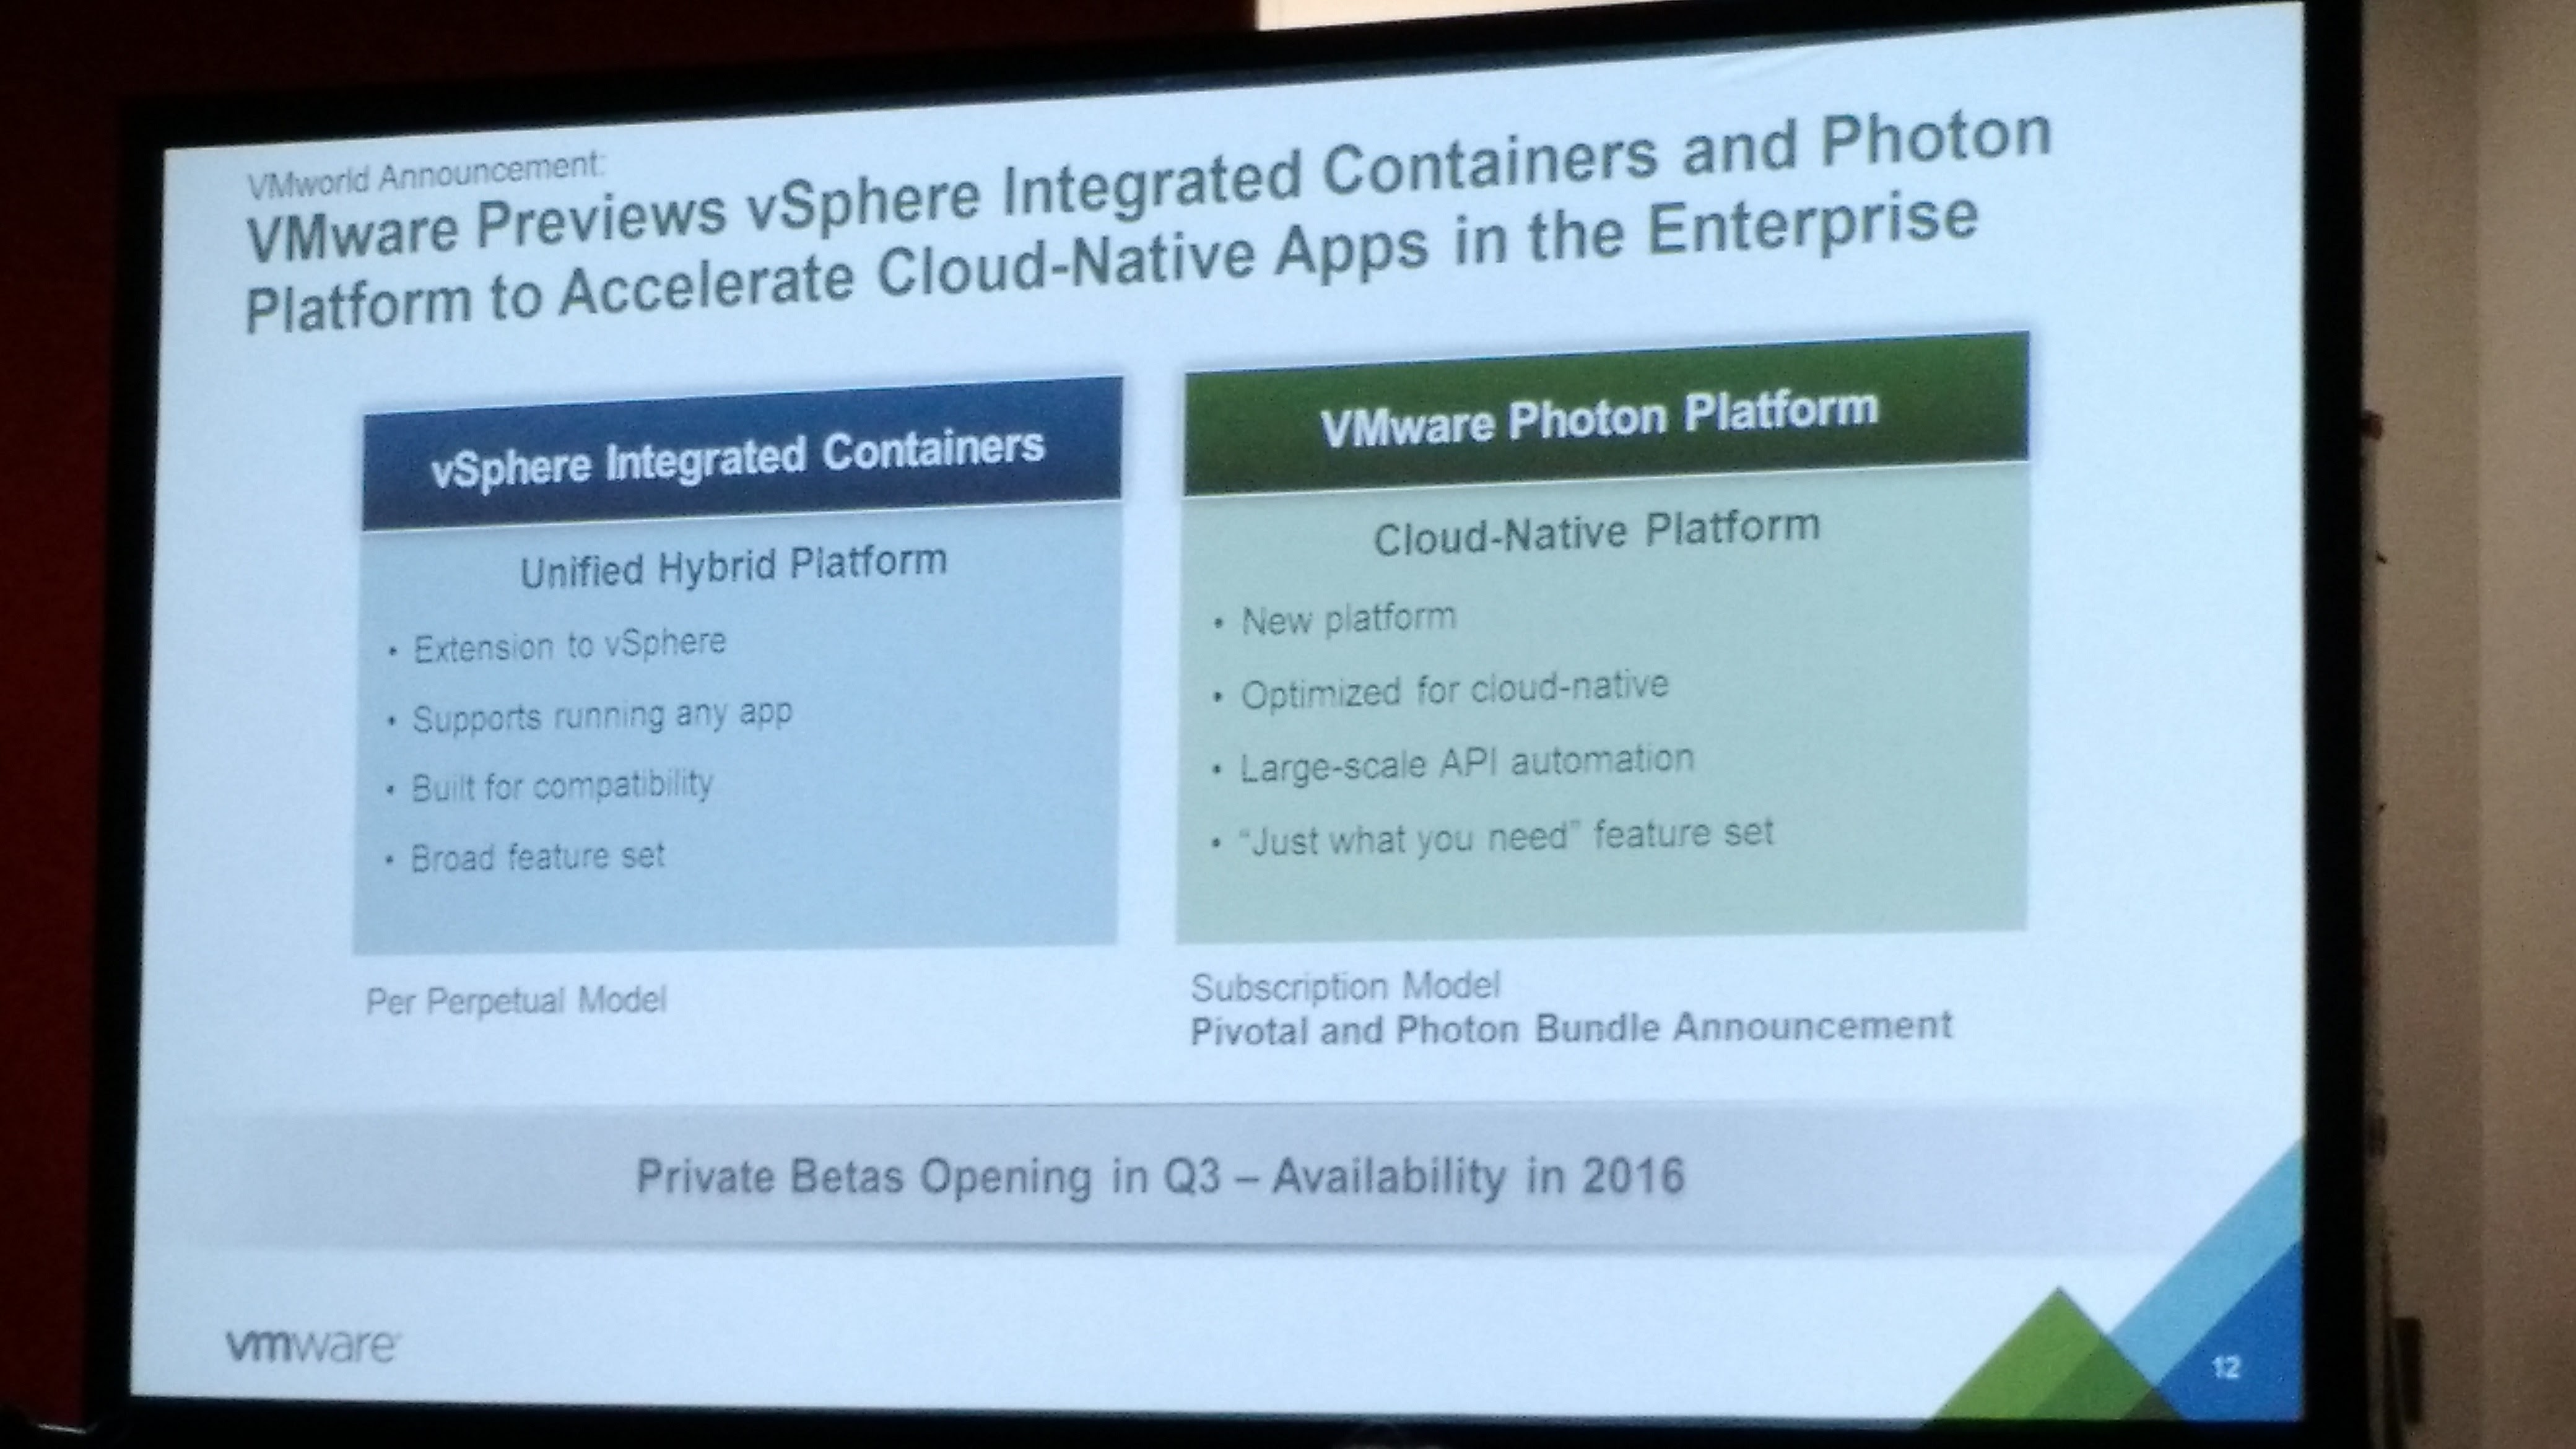 Some detail on vSphere Integrated Containers and Photon Platform from a press conference before the first day's general session at the 2015 VMworld conference in San Francisco on Aug. 31.